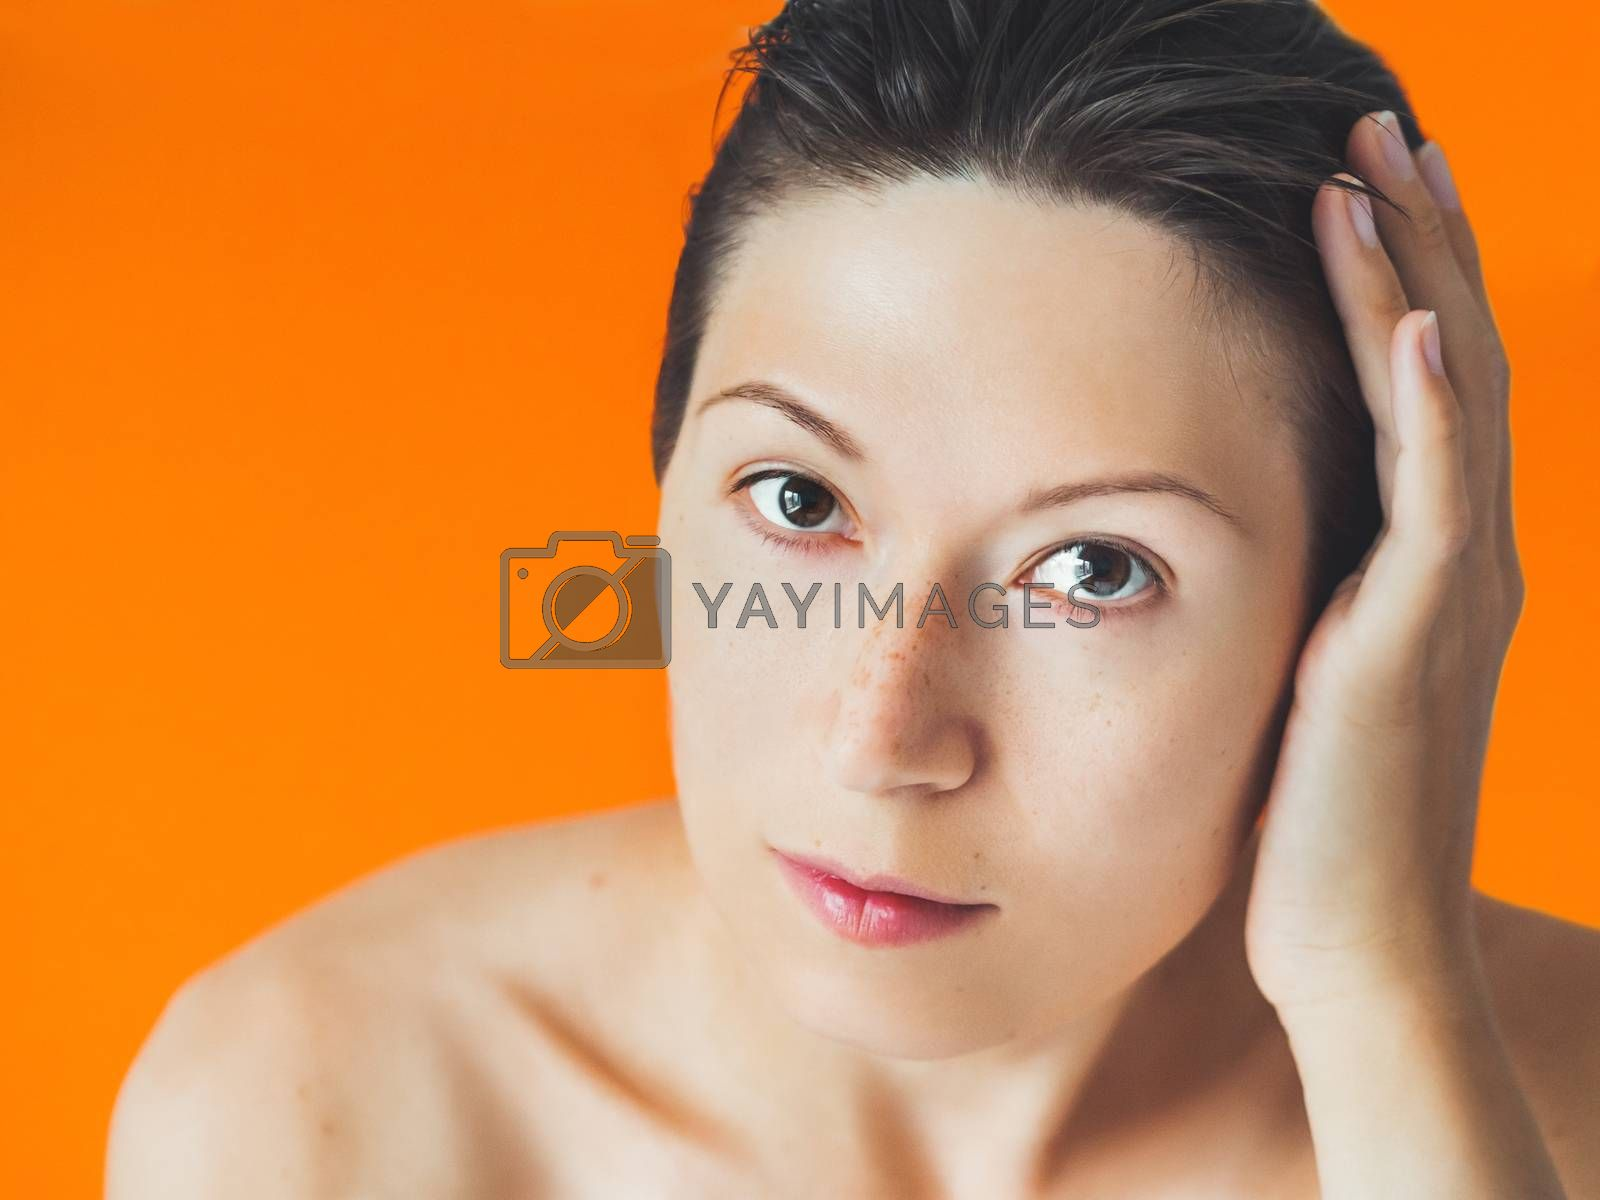 Royalty free image of Portrait of woman with freckles on orange monochrome background. by aksenovko